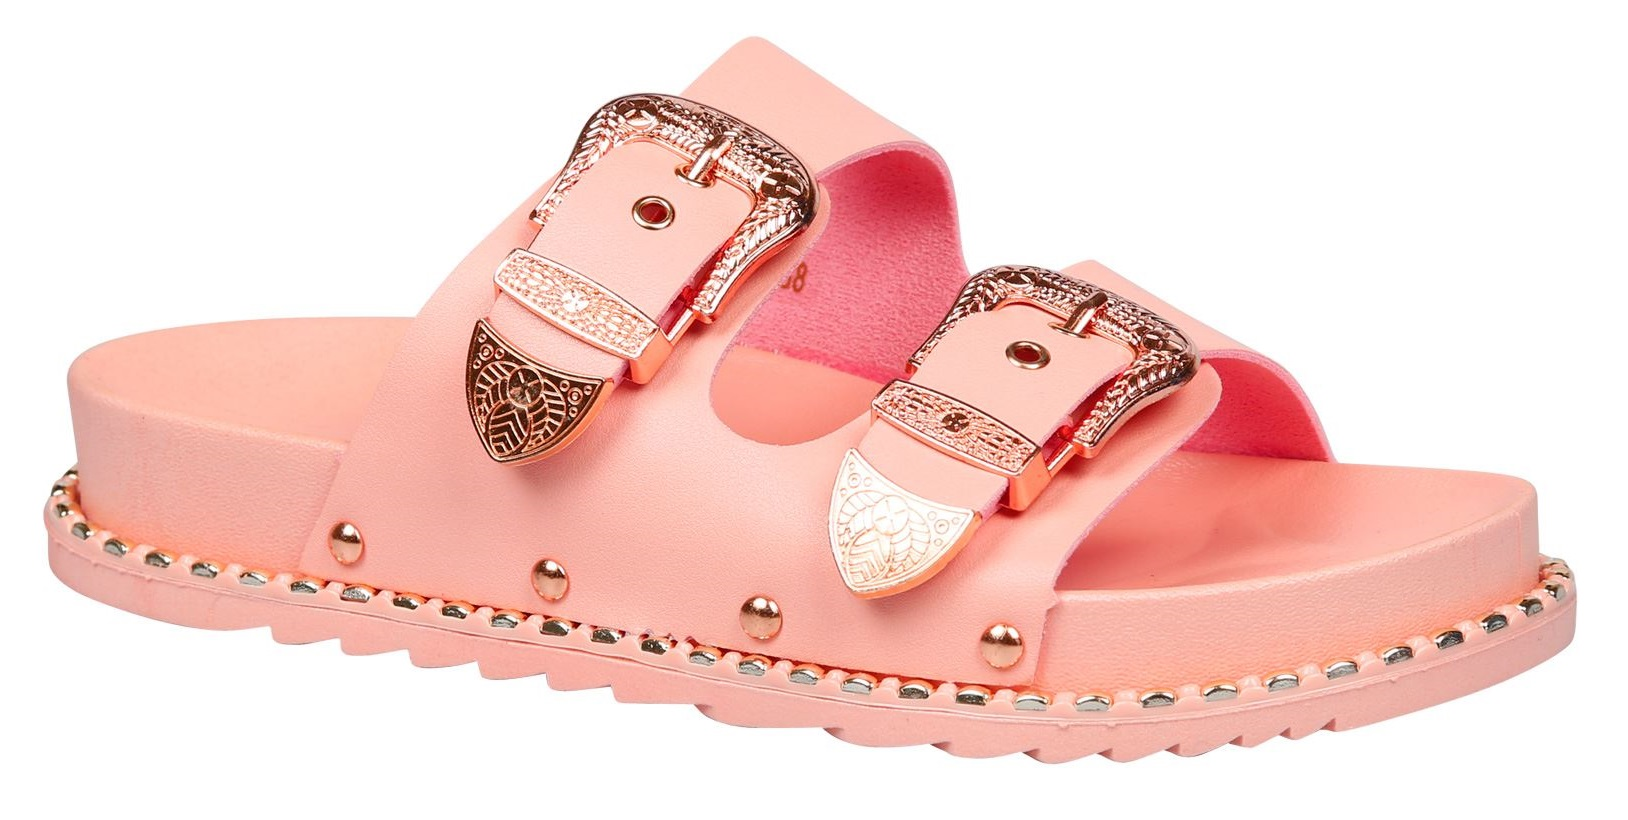 LADIES-WOMENS-FLAT-SLIDERS-STUDDED-SLIP-ON-MULE-SUMMER-HOILDAY-SANDALS-SHOES-SZ thumbnail 16